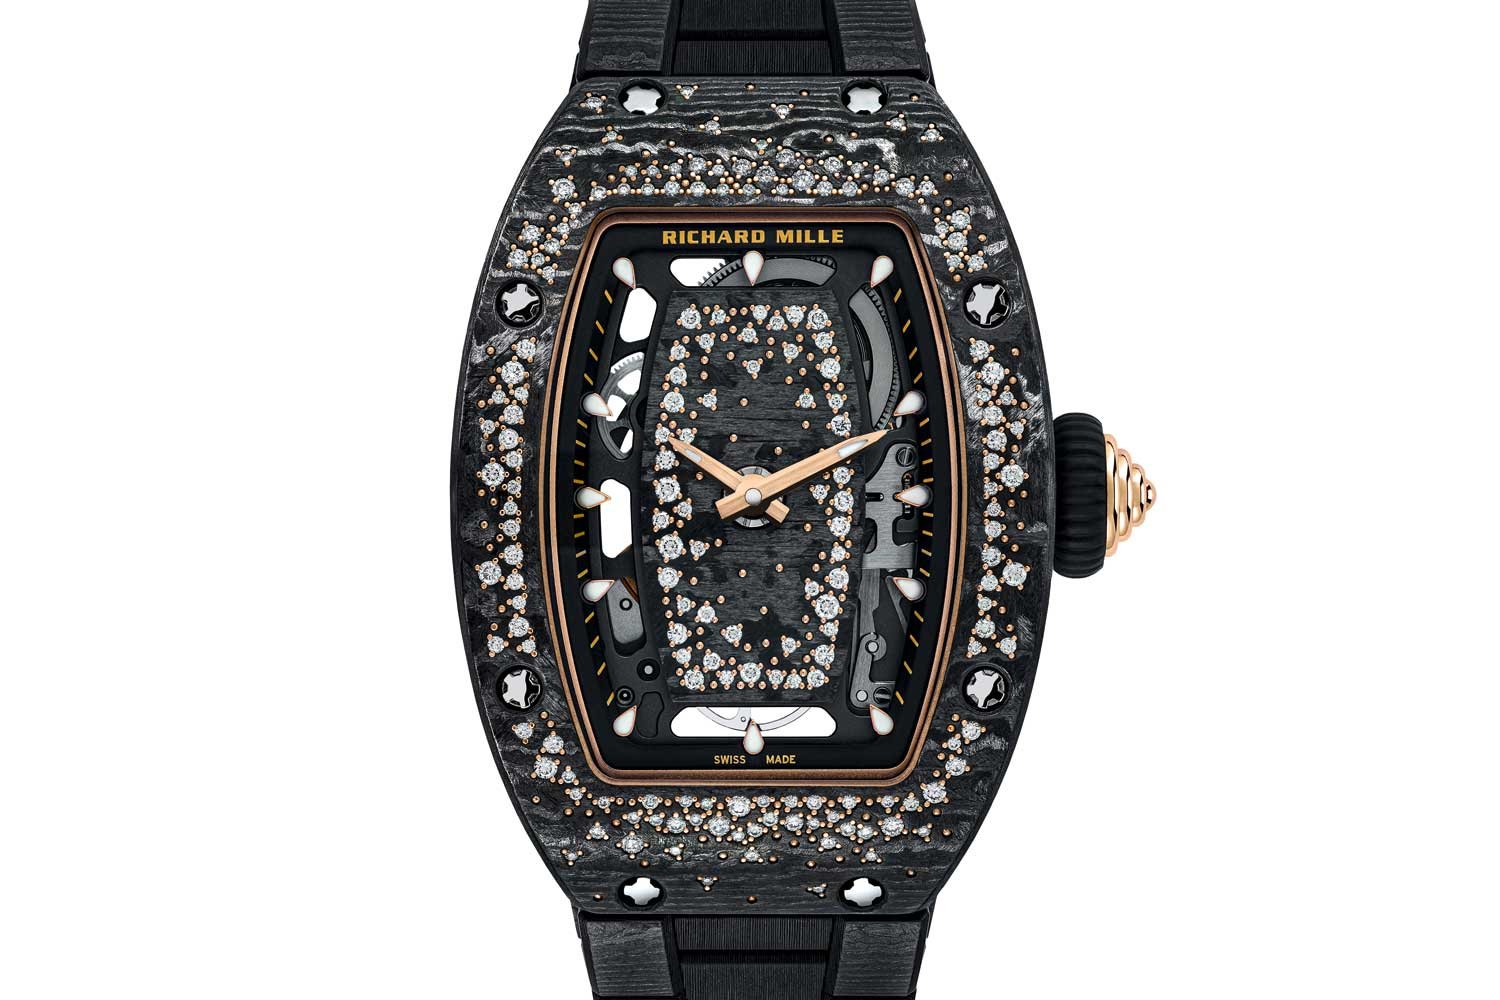 RM 07-01 Automatic Starry Night